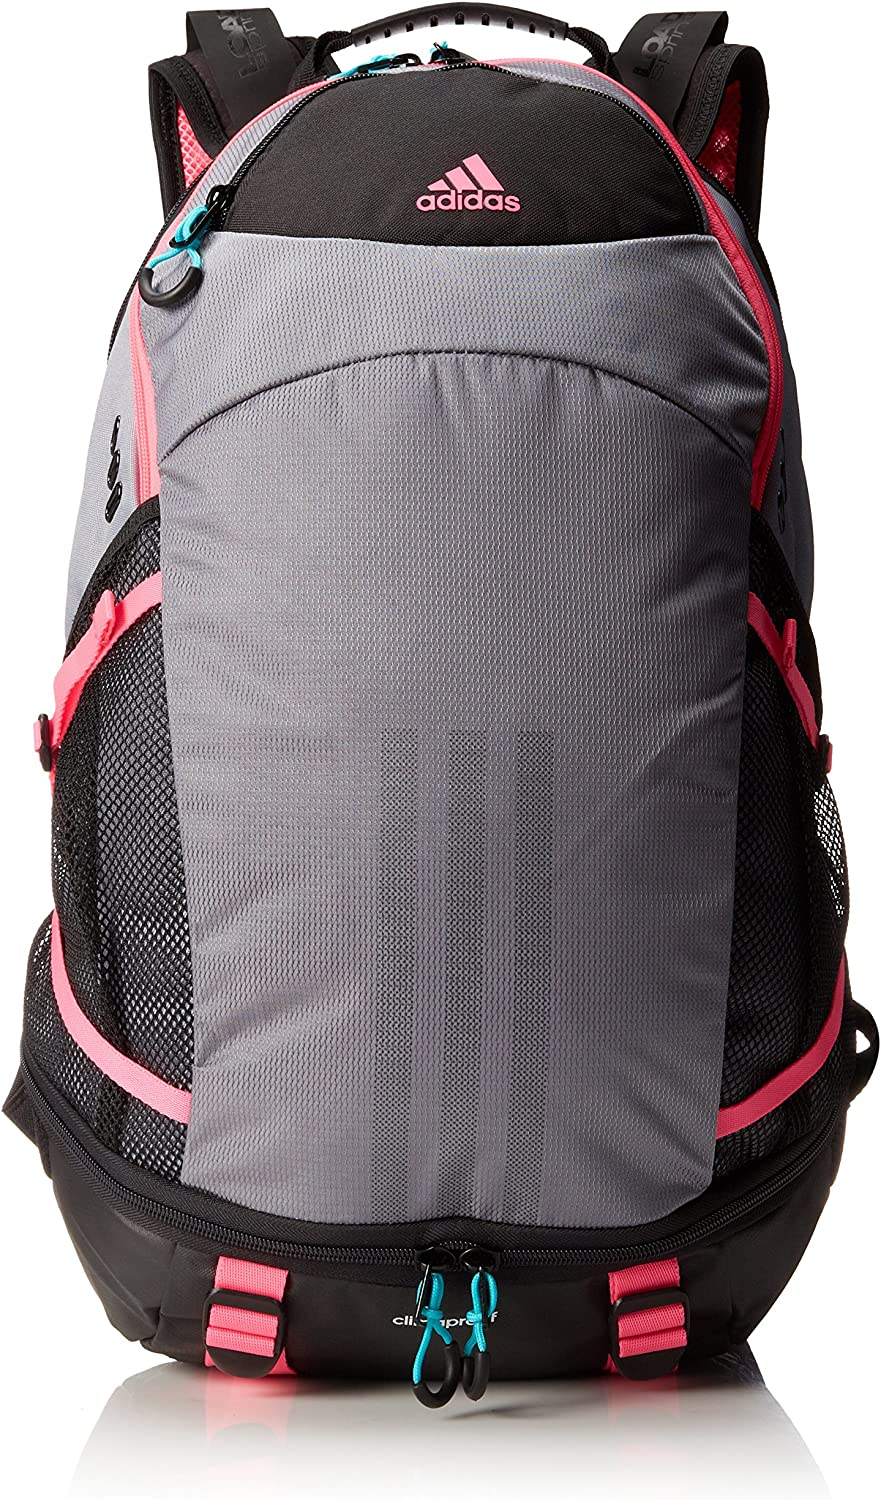 Max 82% OFF Inventory cleanup selling sale adidas Girl's Climacool II Backpack